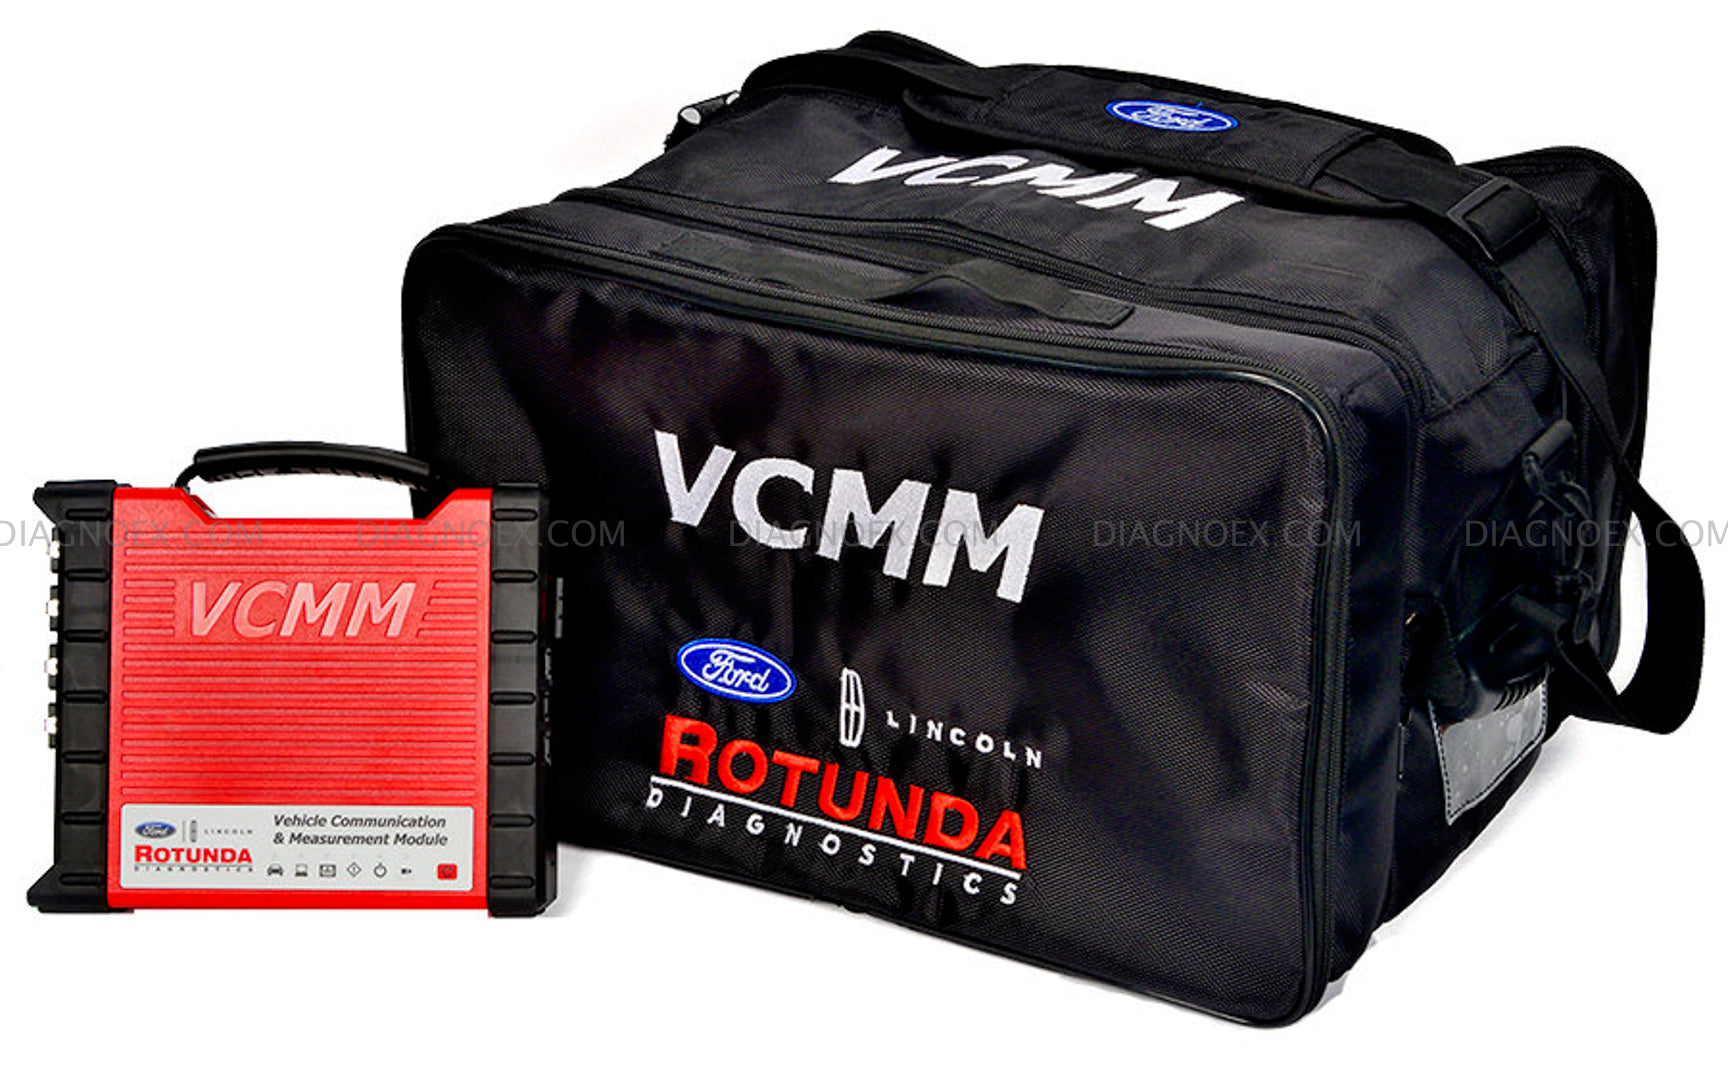 Ford VCMM Advanced Kit 164-R9823 with Gateway Module Breakout Box